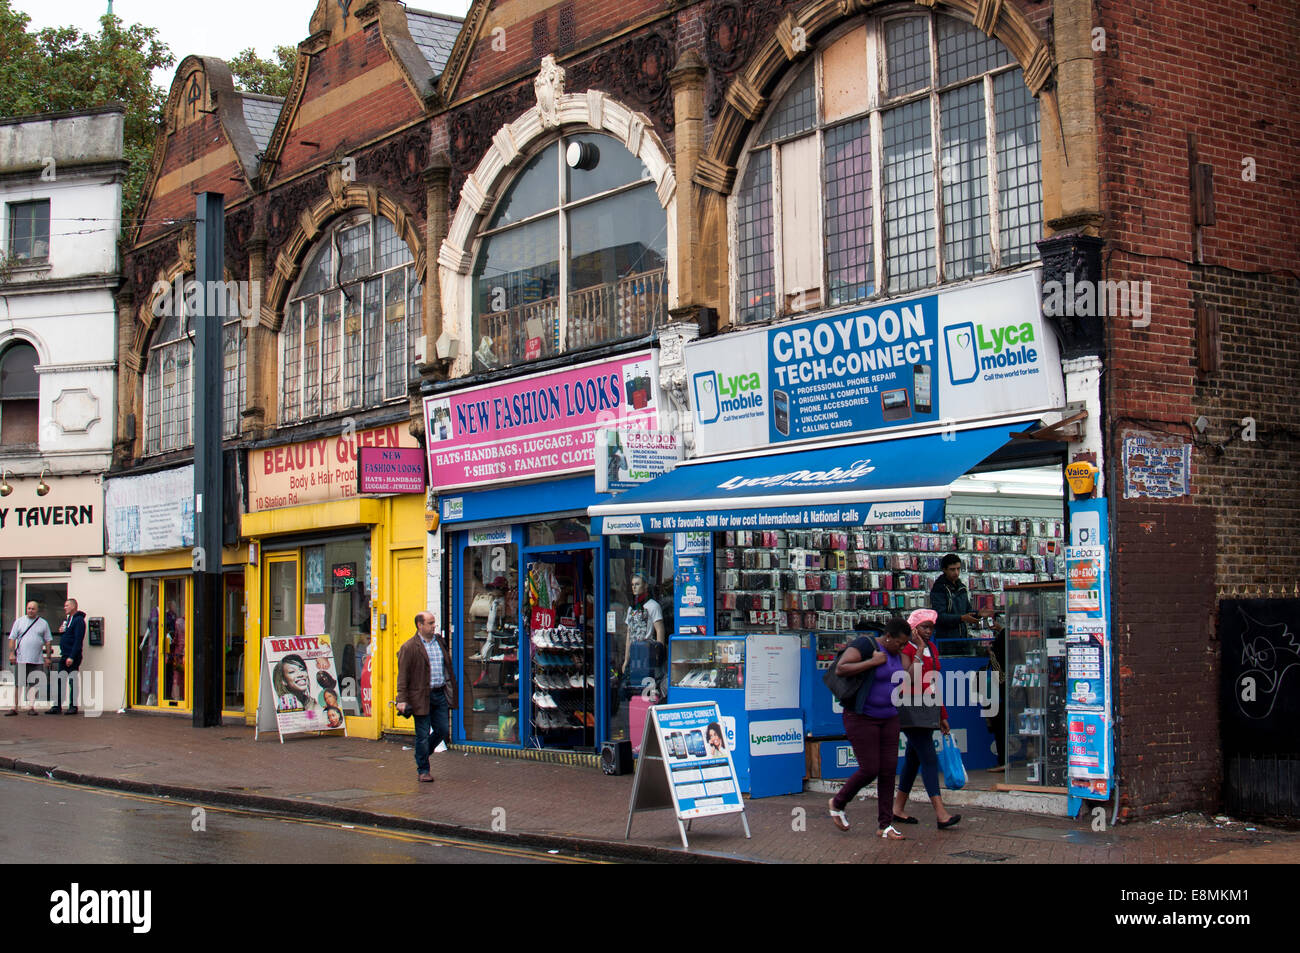 Shops in Station Road, Croydon, South London, UK - Stock Image